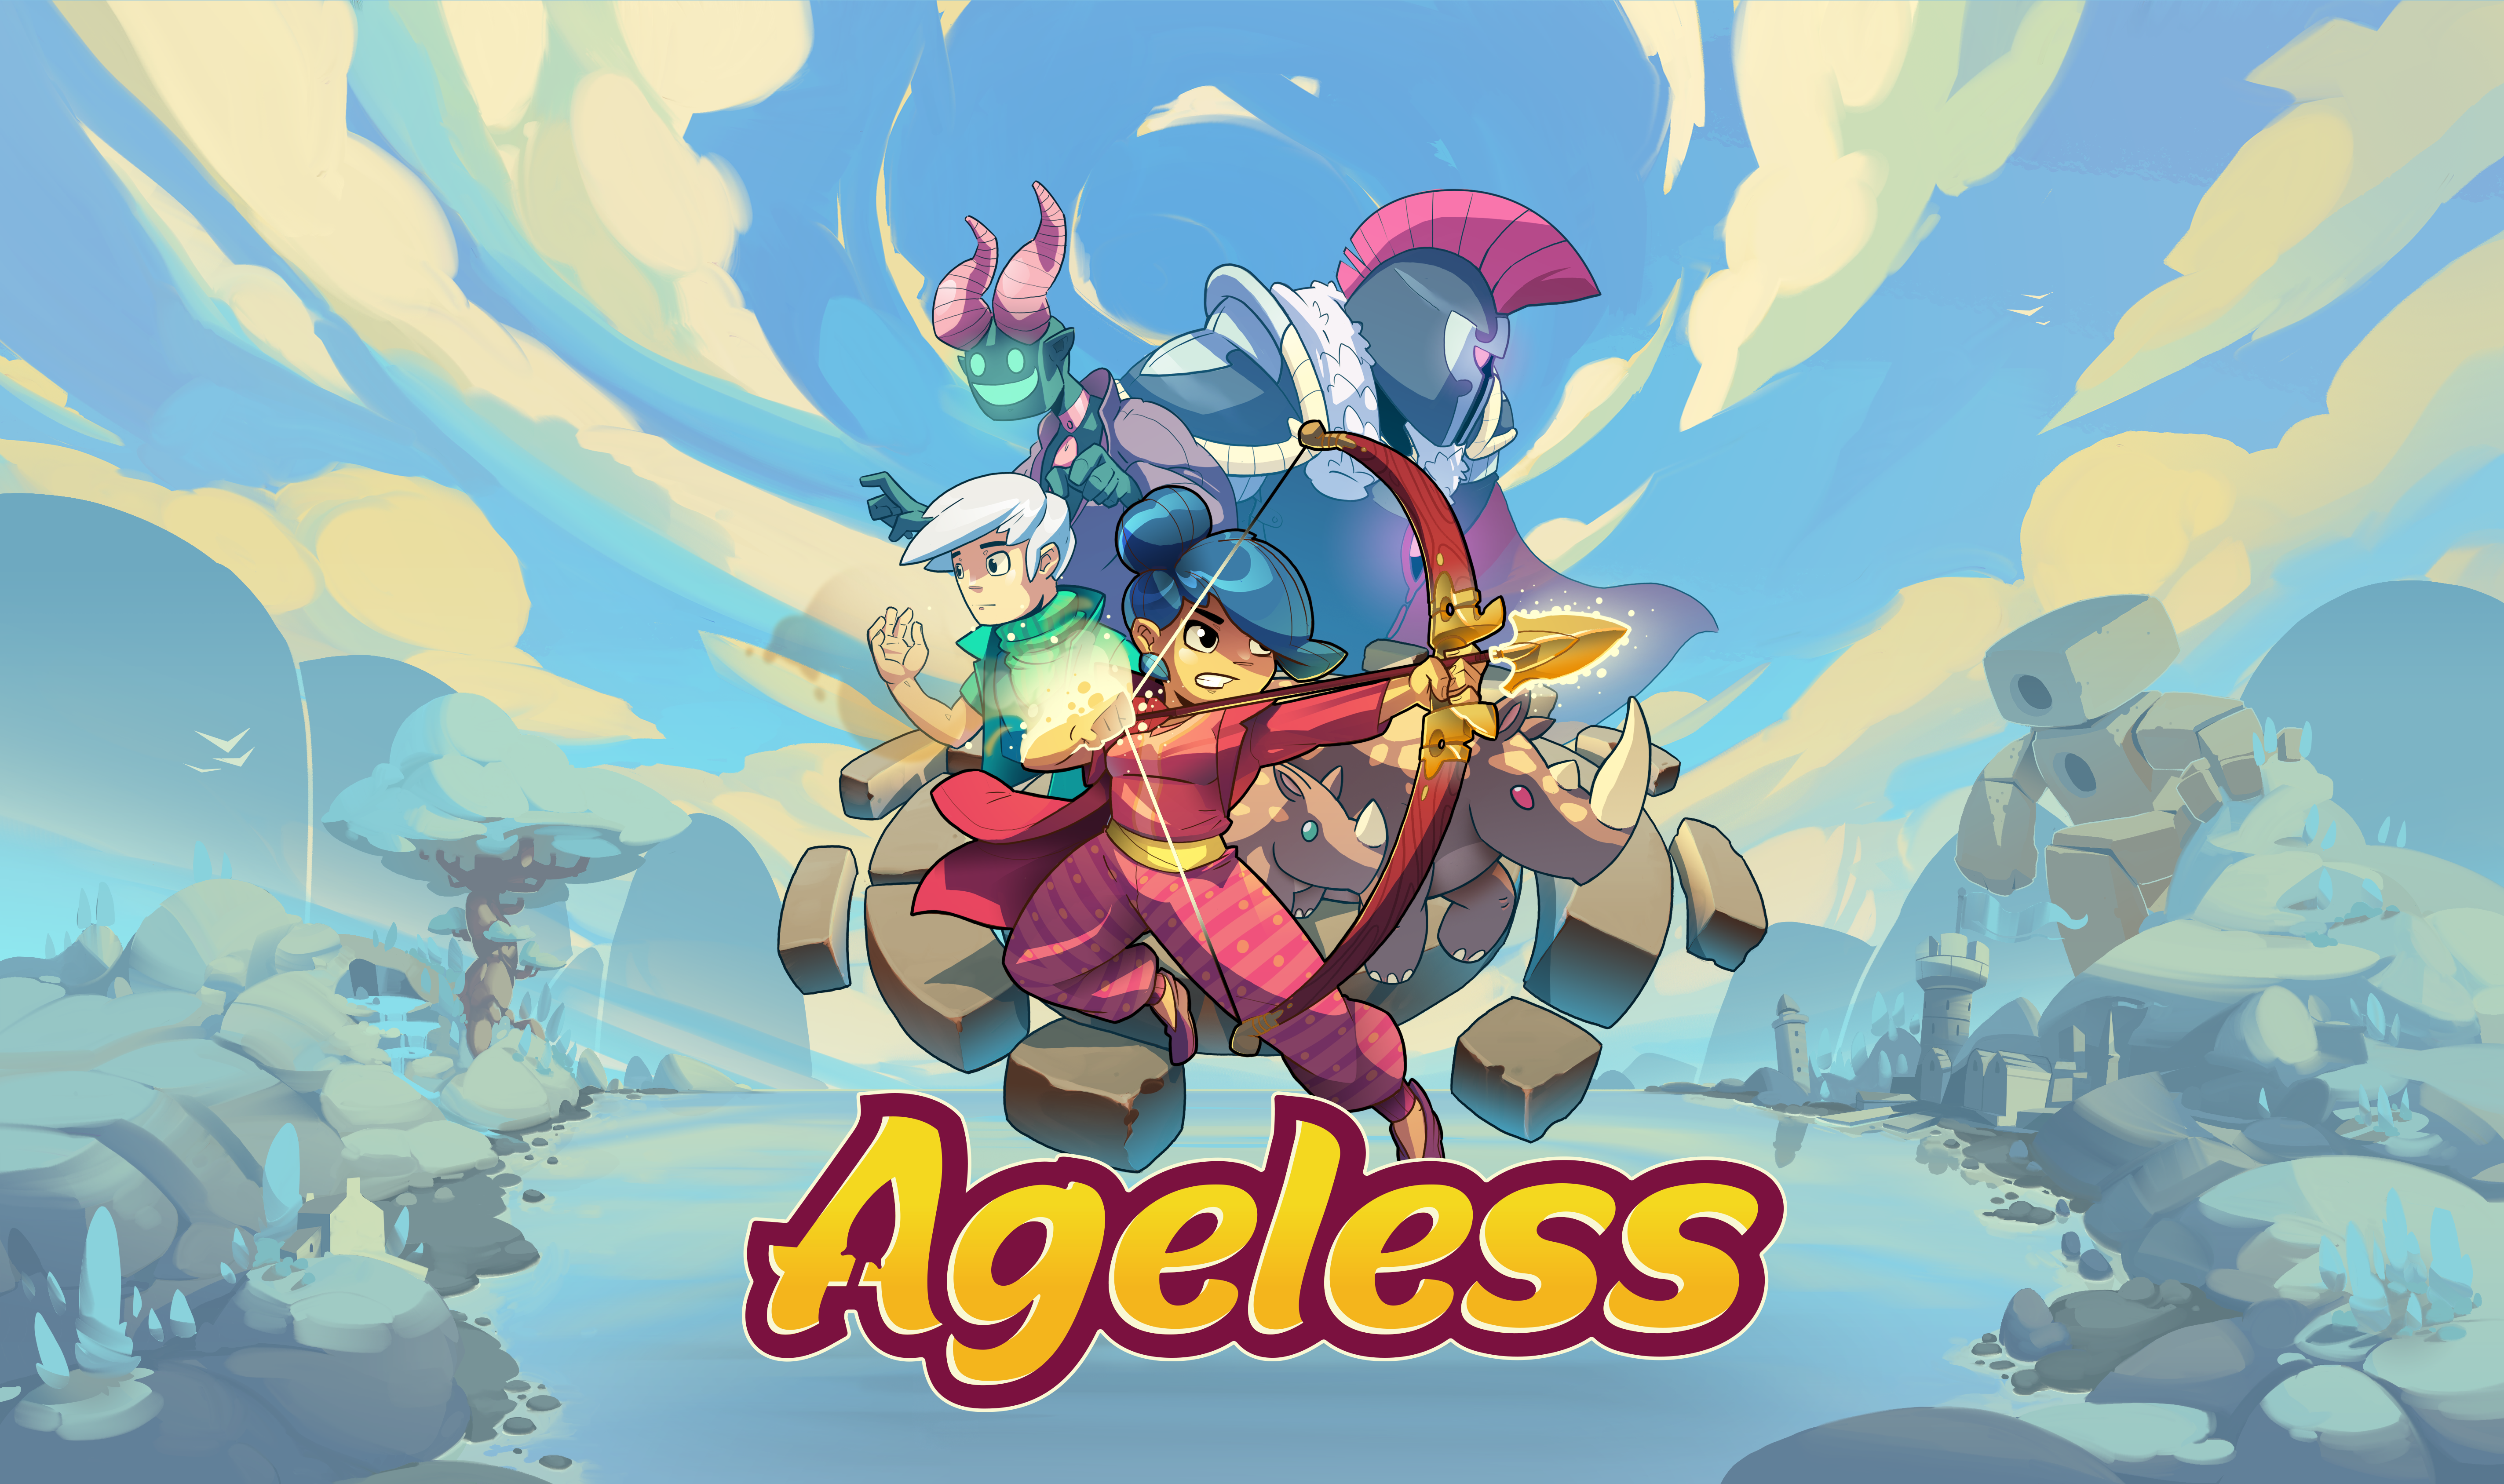 Ageless – New Platforming-Focused Trailer Out Now!